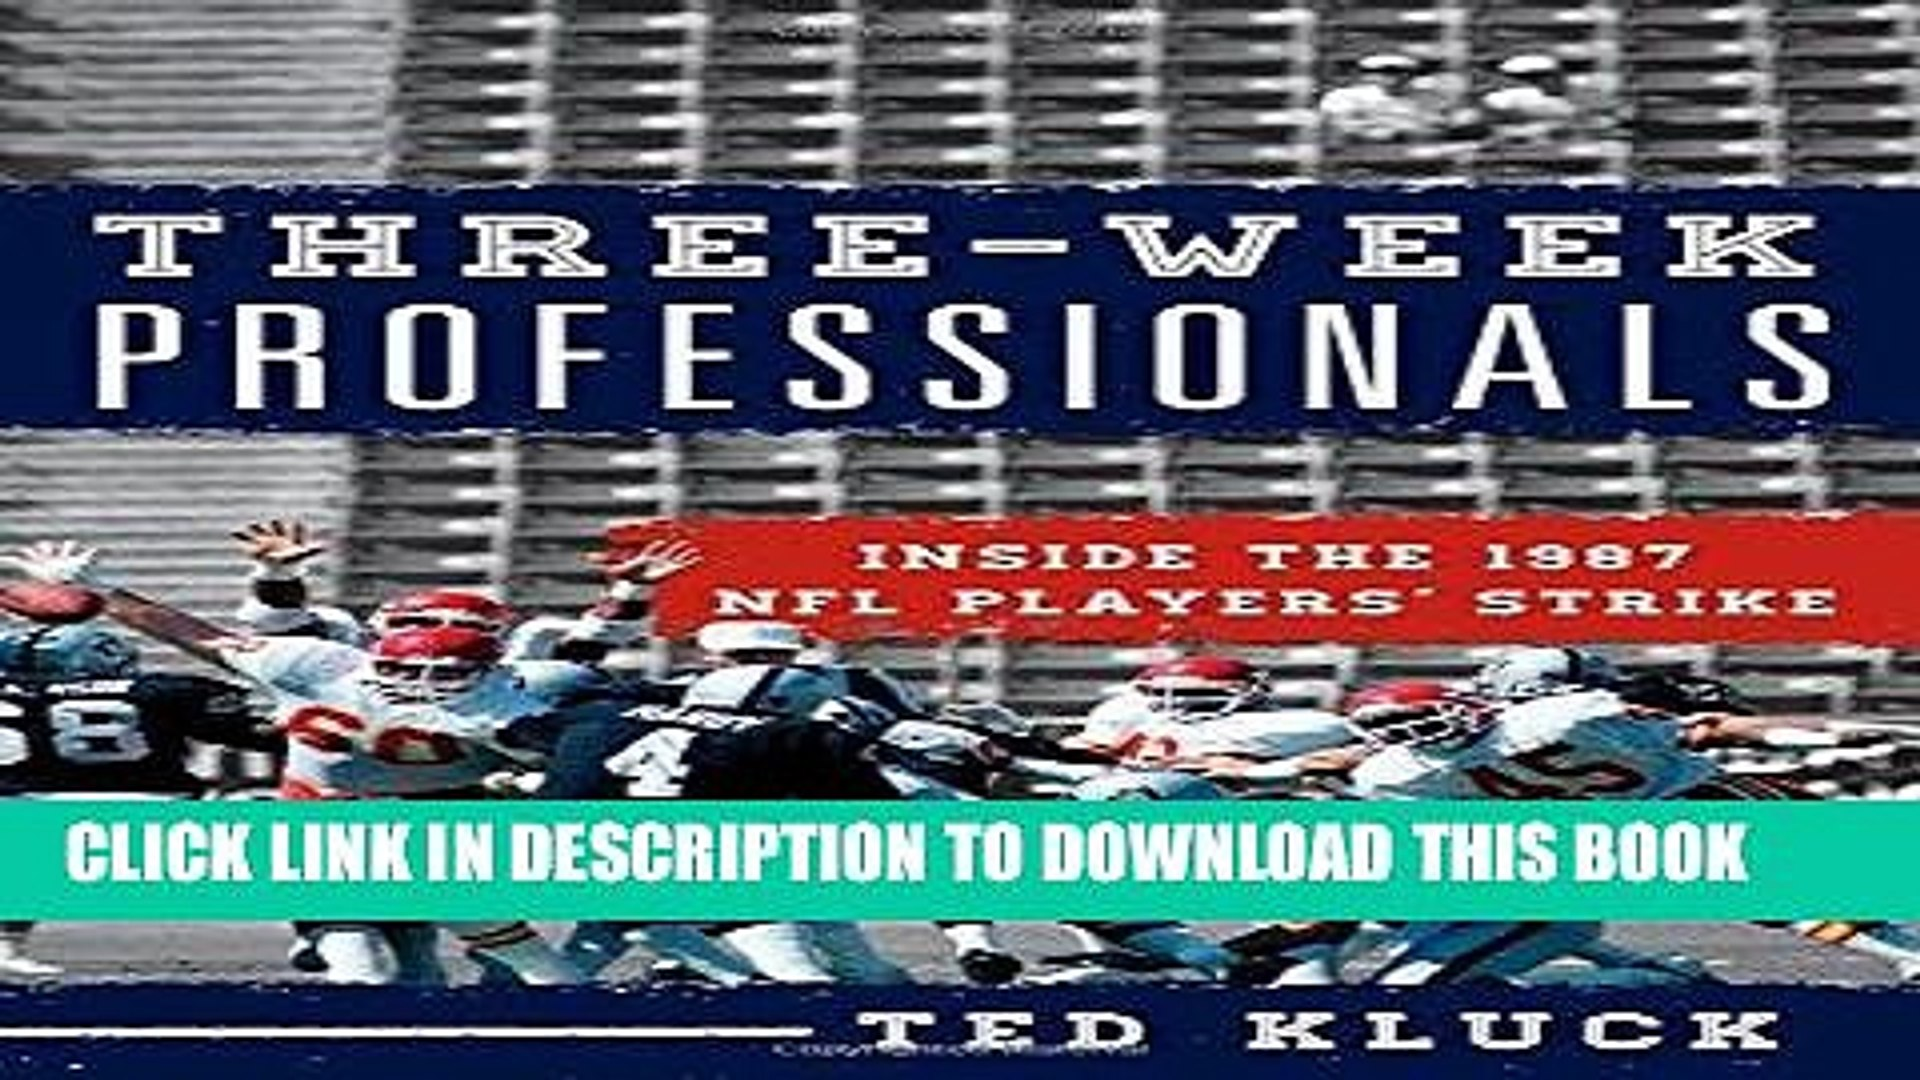 [DOWNLOAD] PDF Three-Week Professionals: Inside the 1987 NFL Players  Strike Collection BEST SELLER